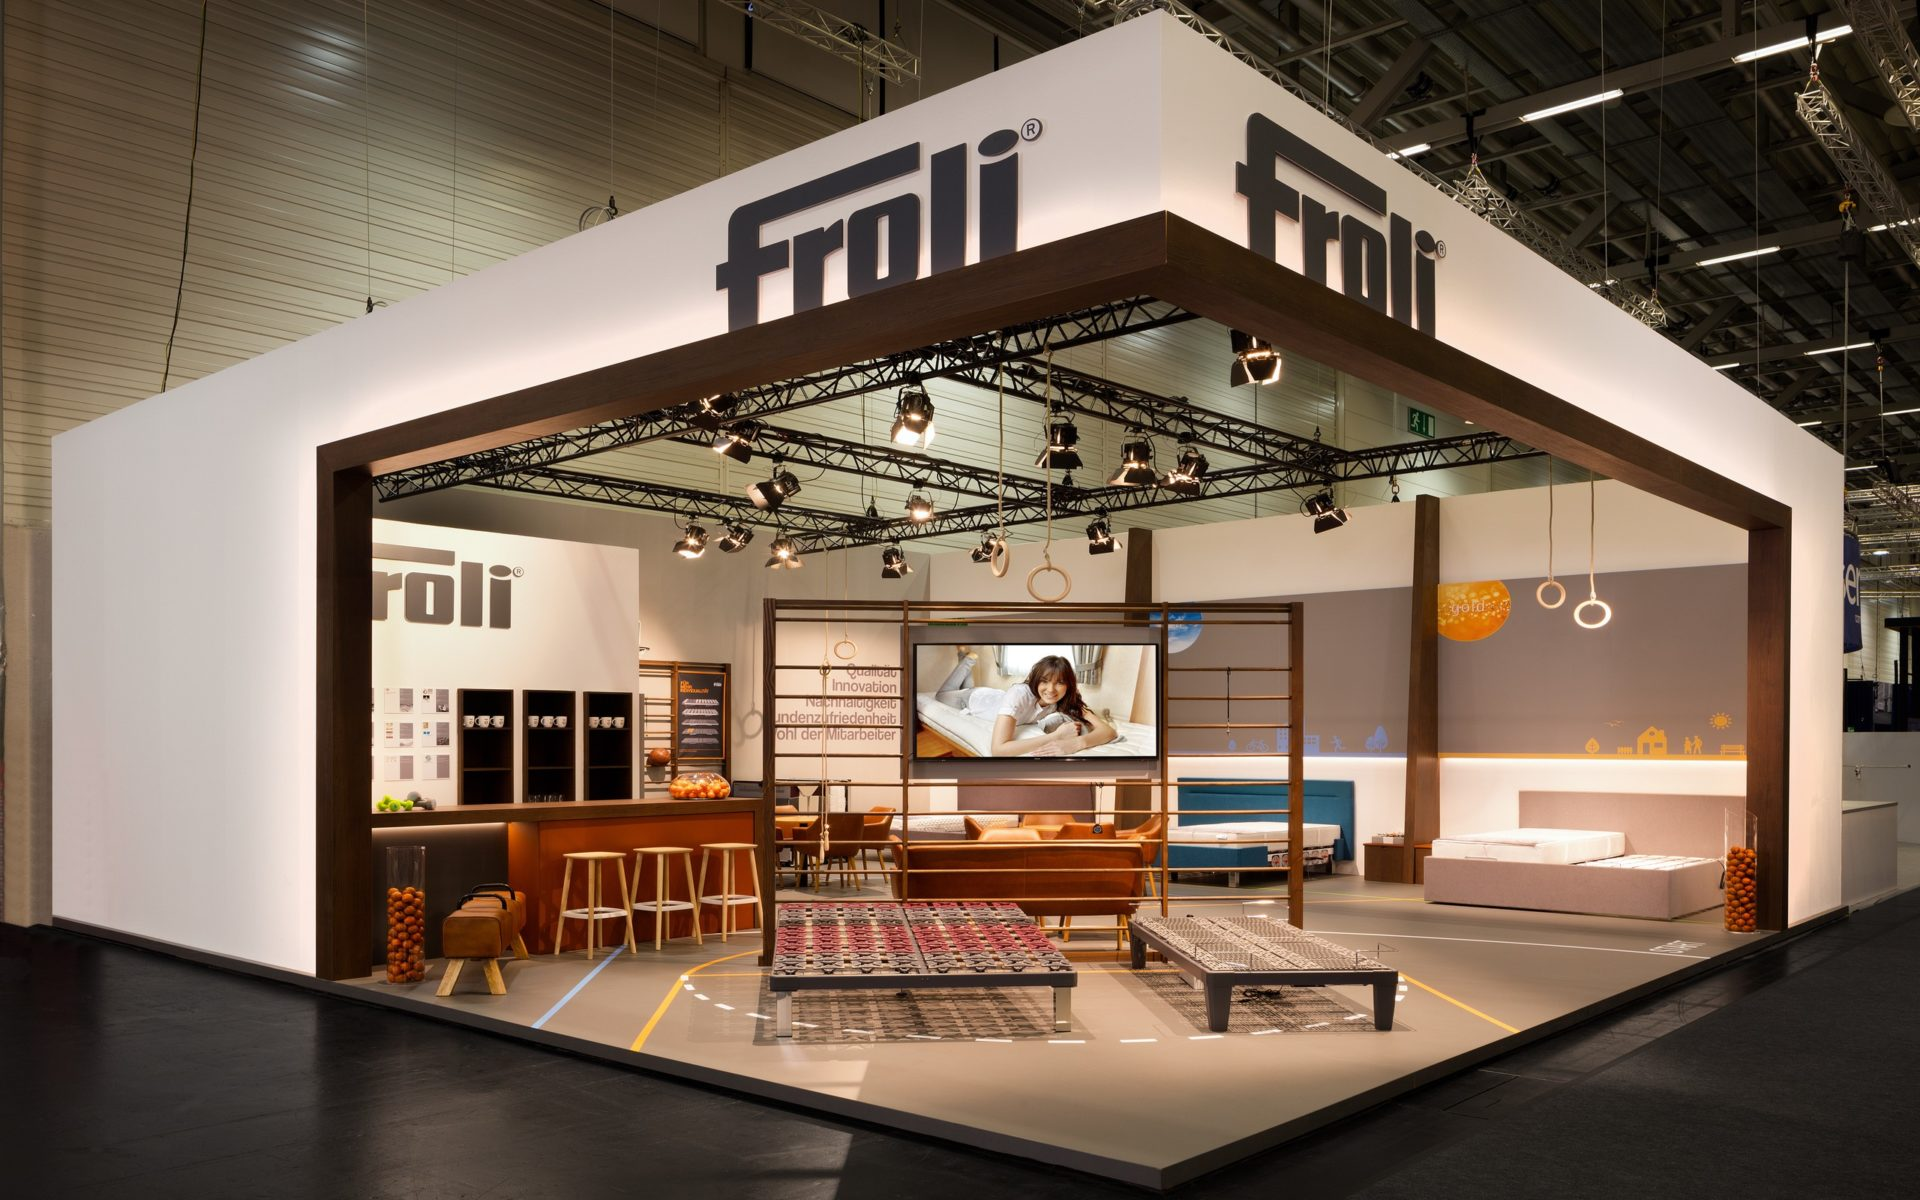 froli messestand imm 2019 messebau siehr bergisch gladbach bei k ln. Black Bedroom Furniture Sets. Home Design Ideas